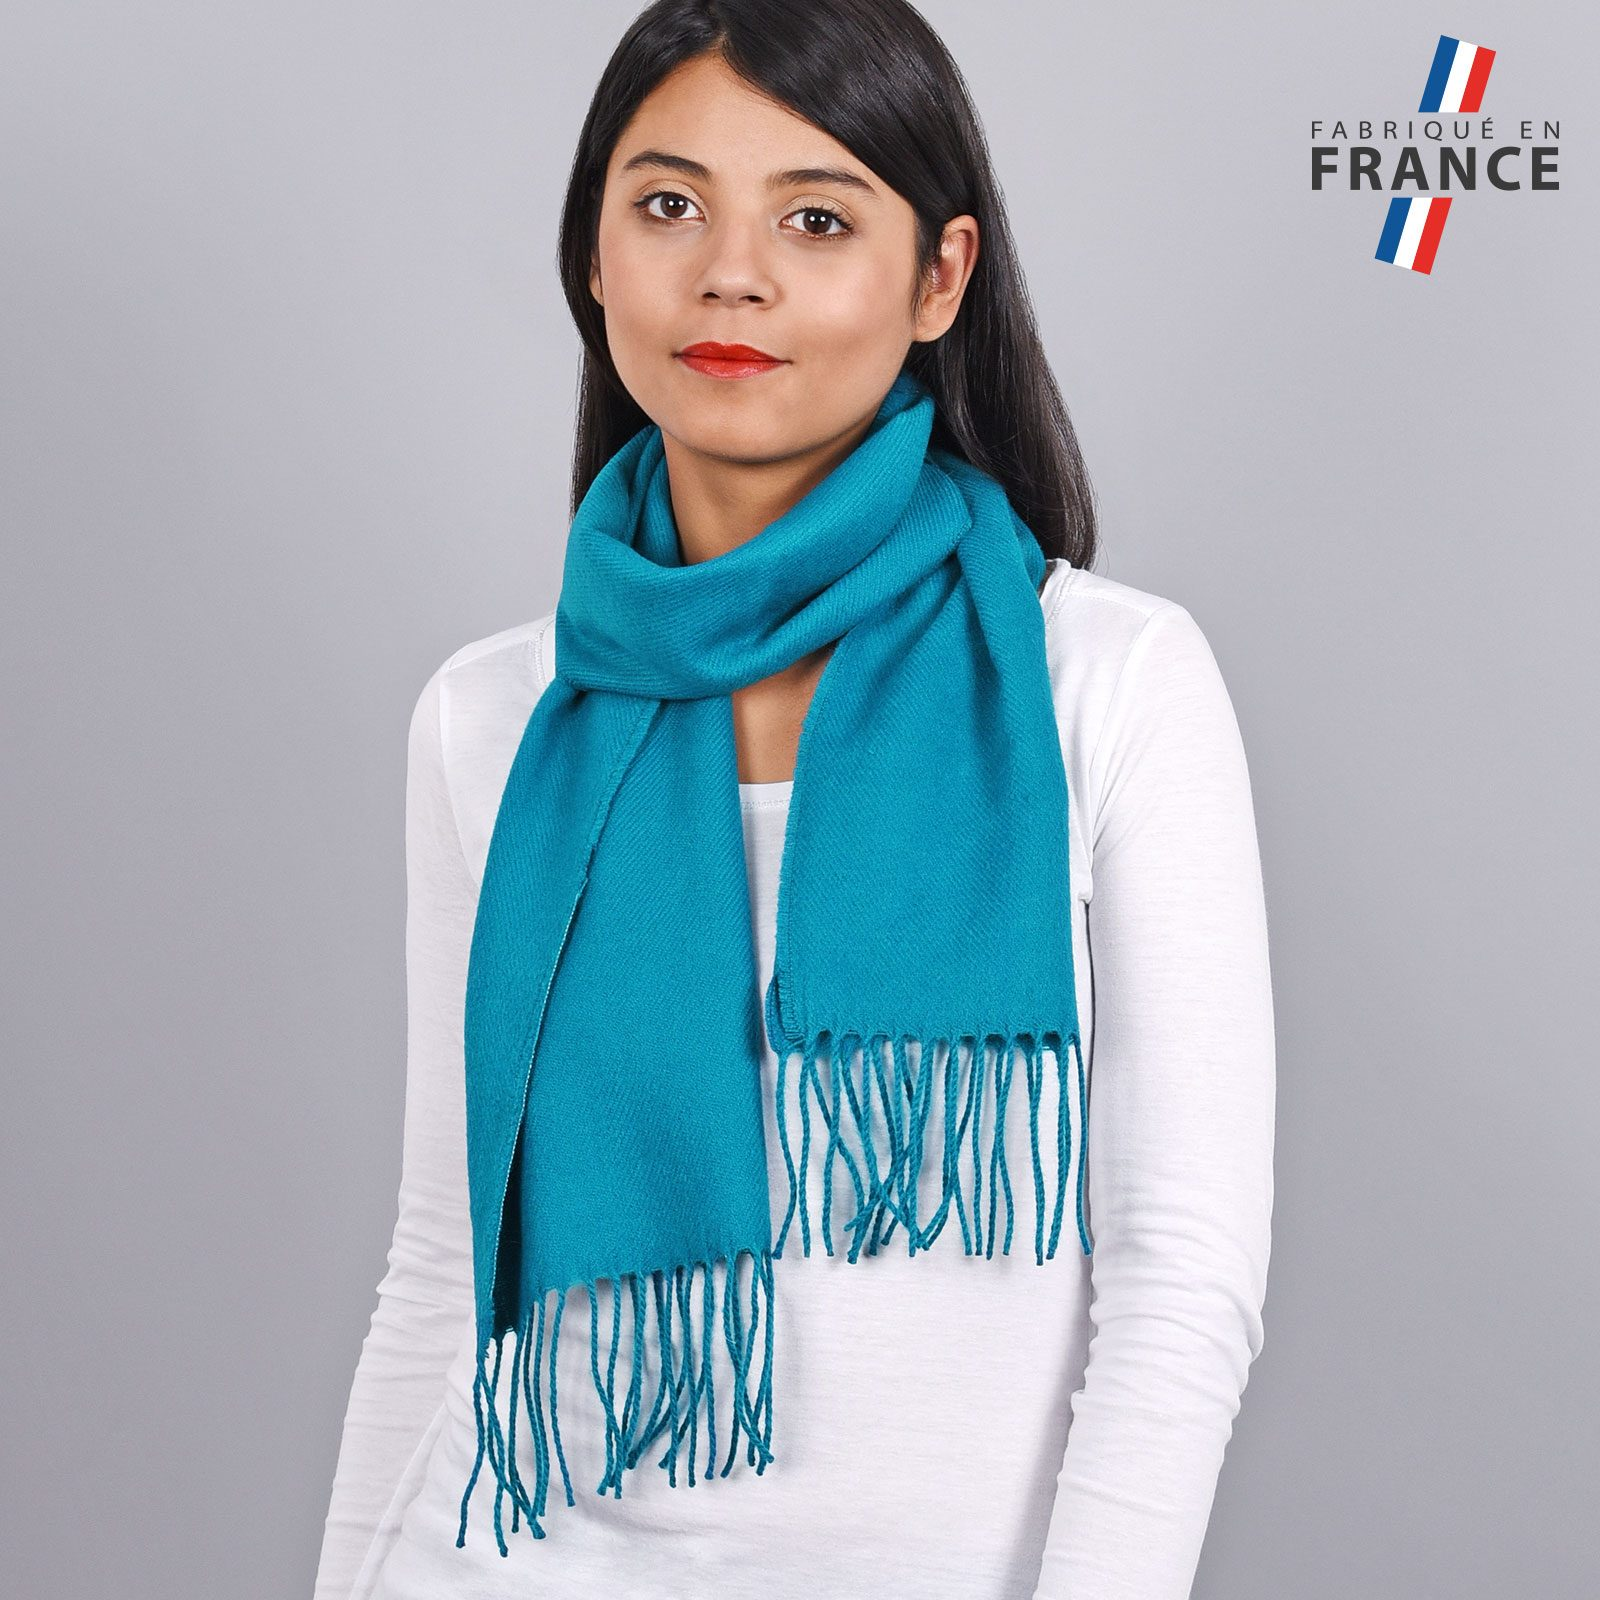 http://lookbook.allee-du-foulard.fr/wp-content/uploads/2018/11/AT-03235-VF16-LB_FR-echarpe-franges-bleu-femme-fabrication-francaise-1600x1600.jpg